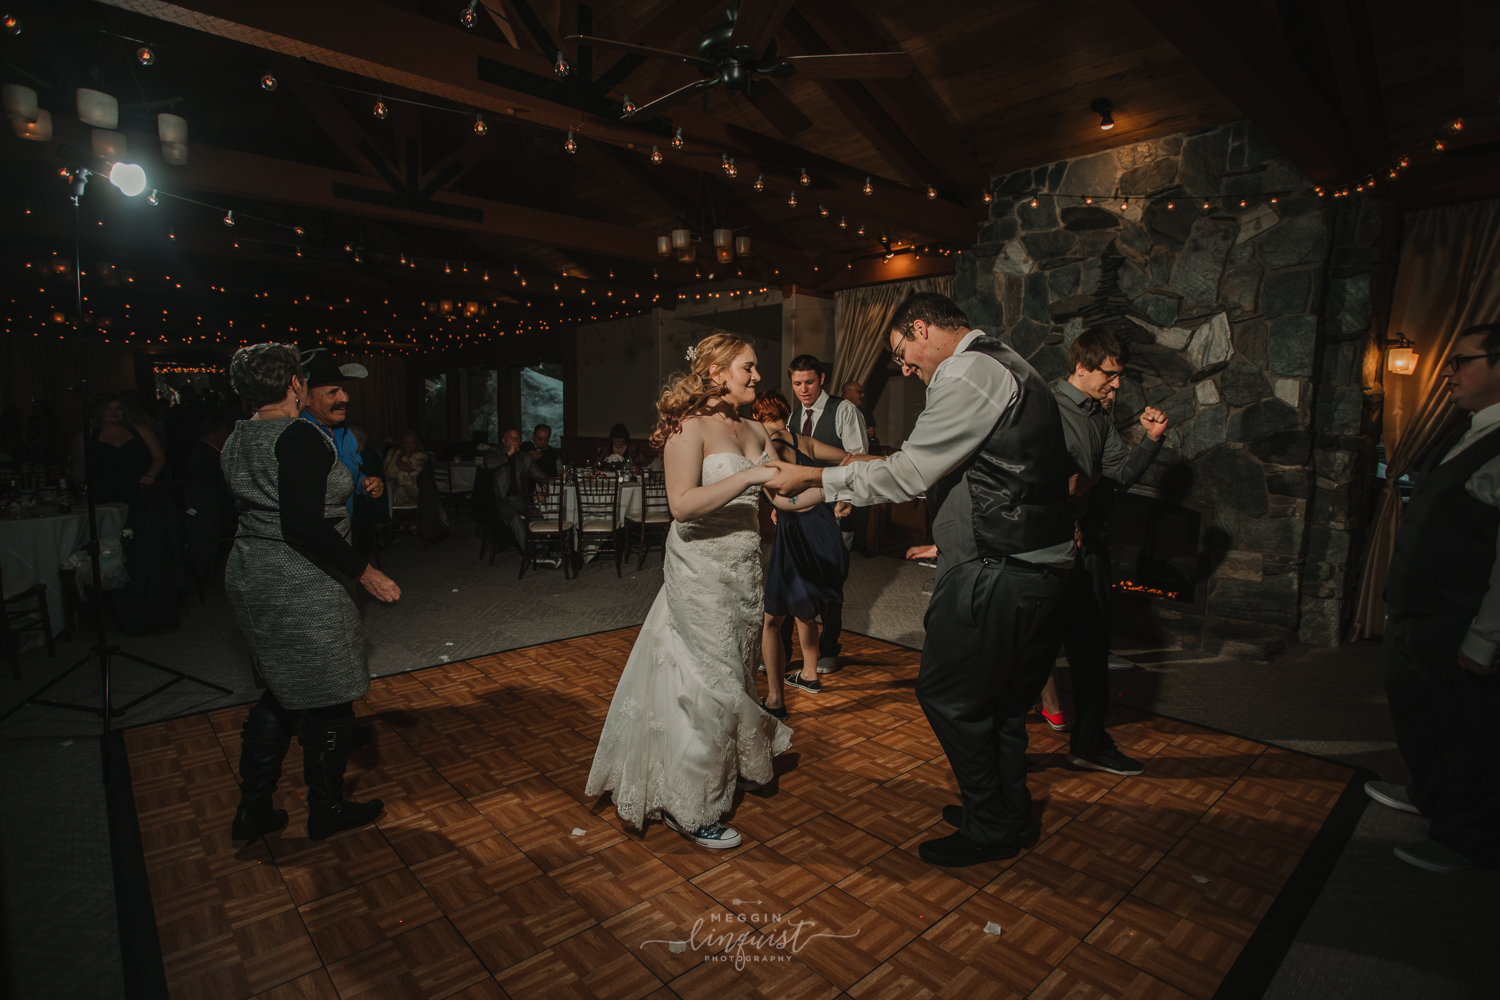 music-themed-winter-wedding-tannenbaum-event-center-reno-lake-tahoe-wedding-photographer-78.jpg